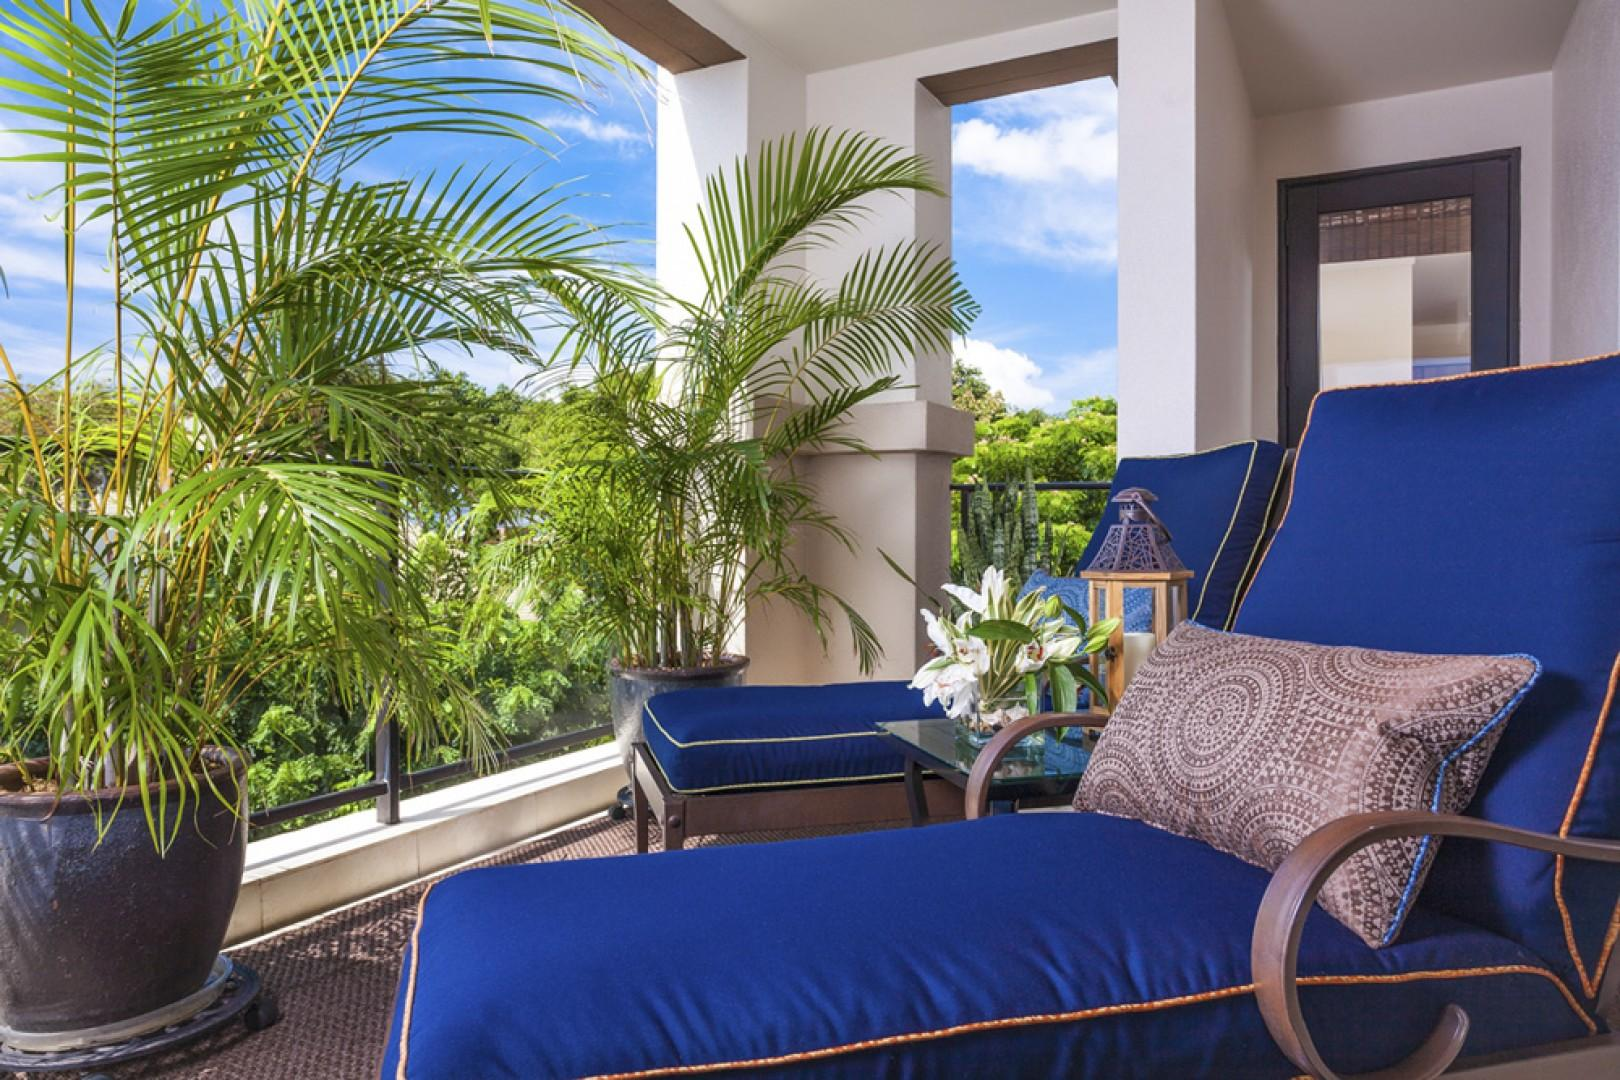 Alternate view of the wrap-around lanai, with room-for-two plush chaise lounge chairs and ocean views.